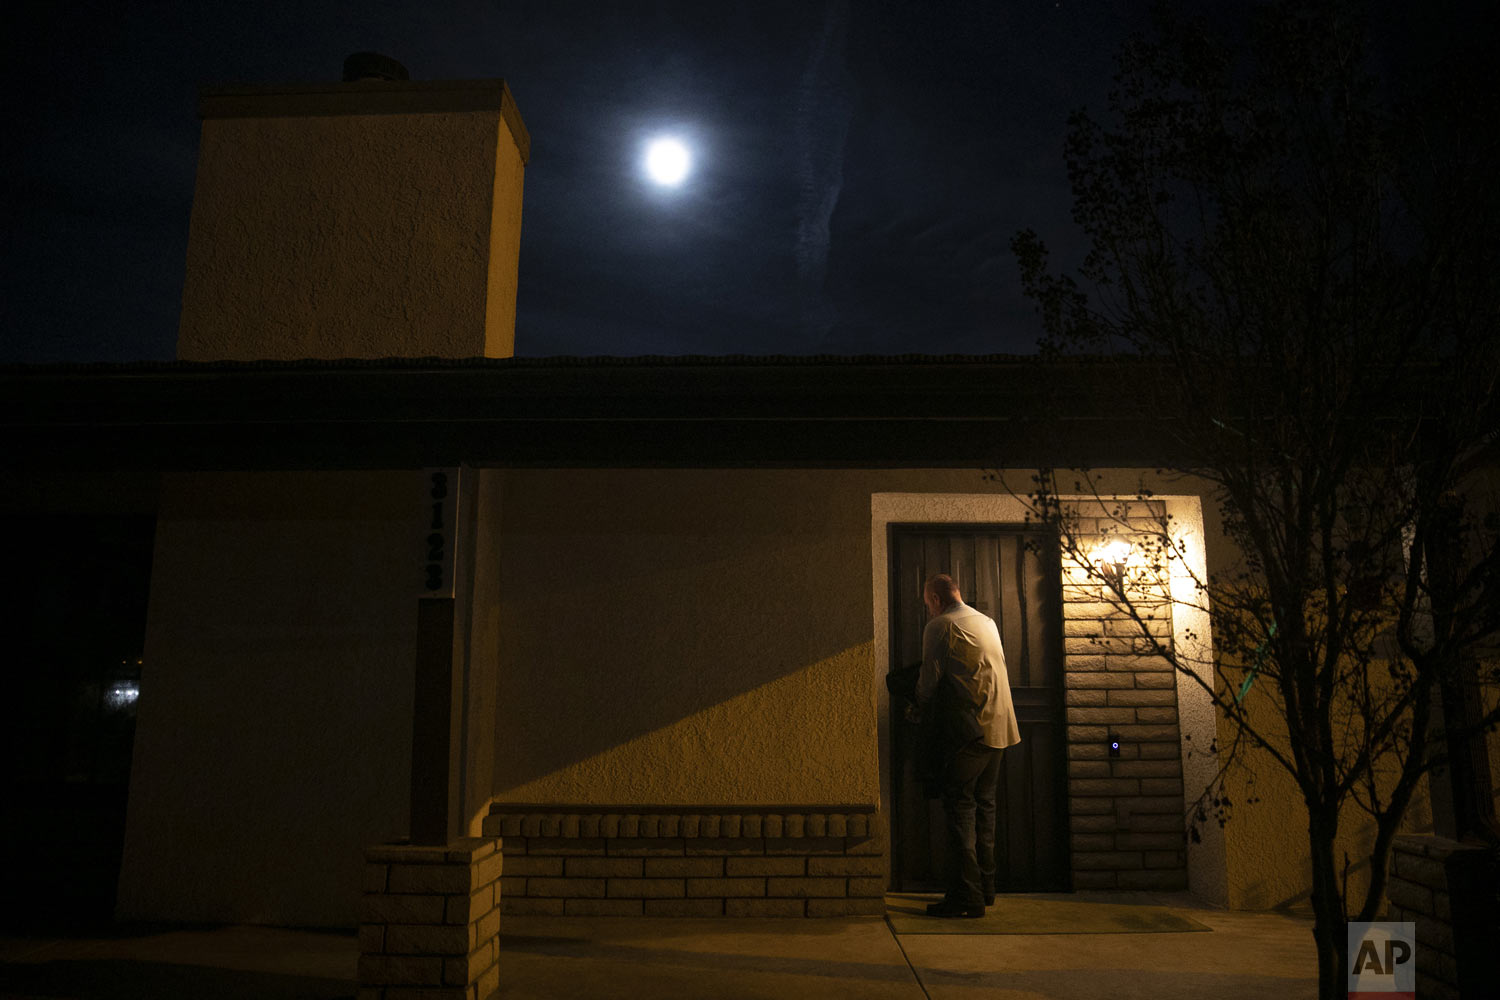 """Chris George, a federal employee furloughed from his job as a forestry technician supervisor for the U.S. Department of Agriculture Forest Service, leaves his home for a free meal offered to federal workers affected by the government shutdown in Hemet, Calif., on Saturday, Jan. 19, 2019. """"I have a lot of pride, so asking for help is difficult for me. It's very difficult for me because I'm always the one giving back or putting myself before anybody else,"""" said George. """"Now, here I am in the situation where I'm the one that is in need."""" (AP Photo/Jae C. Hong)"""